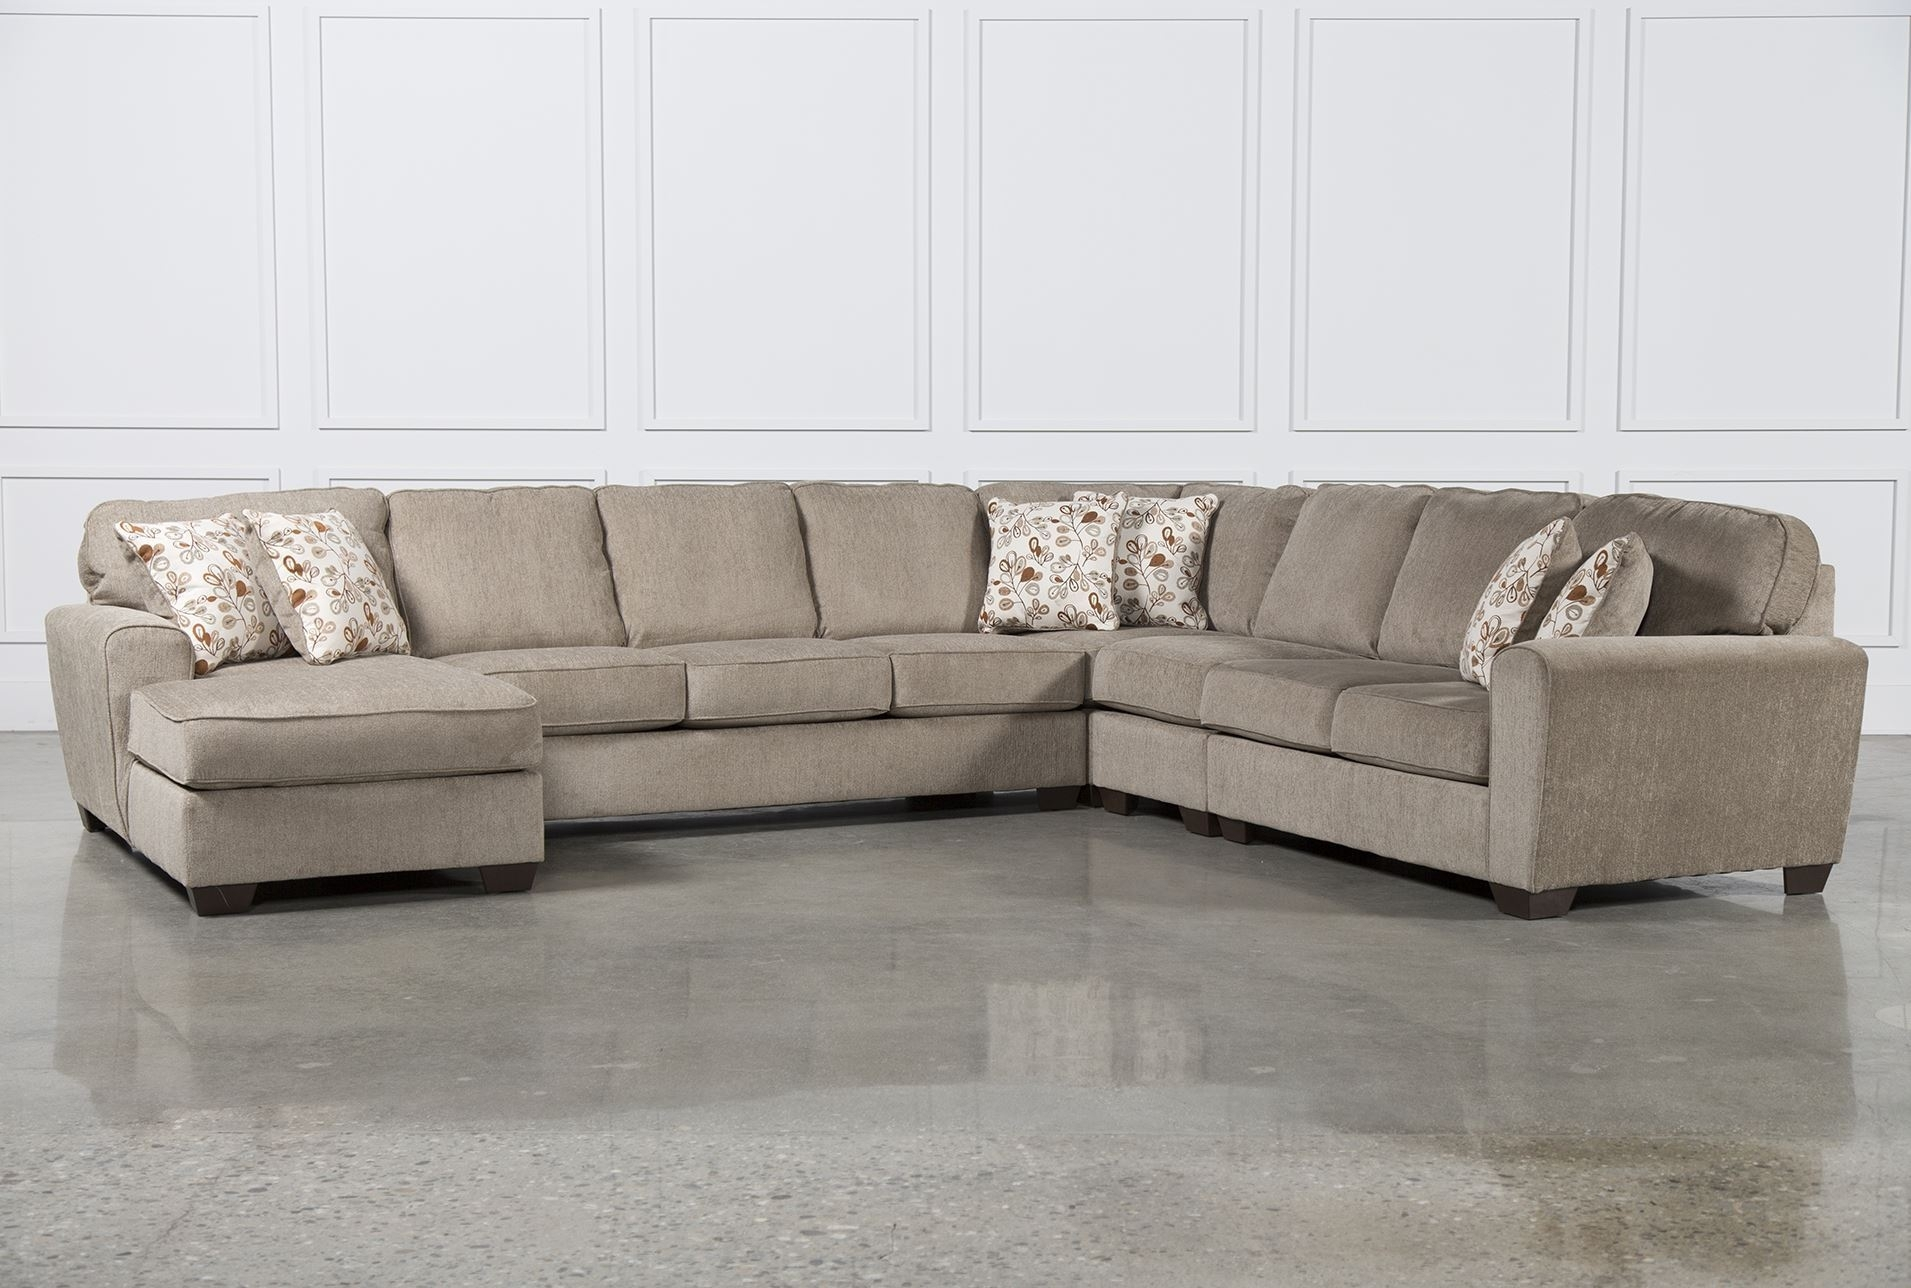 Best Ideas Of Laf Chaise On Gordon 3 Piece Sectional W Laf Chaise With Gordon 3 Piece Sectionals With Raf Chaise (View 4 of 25)